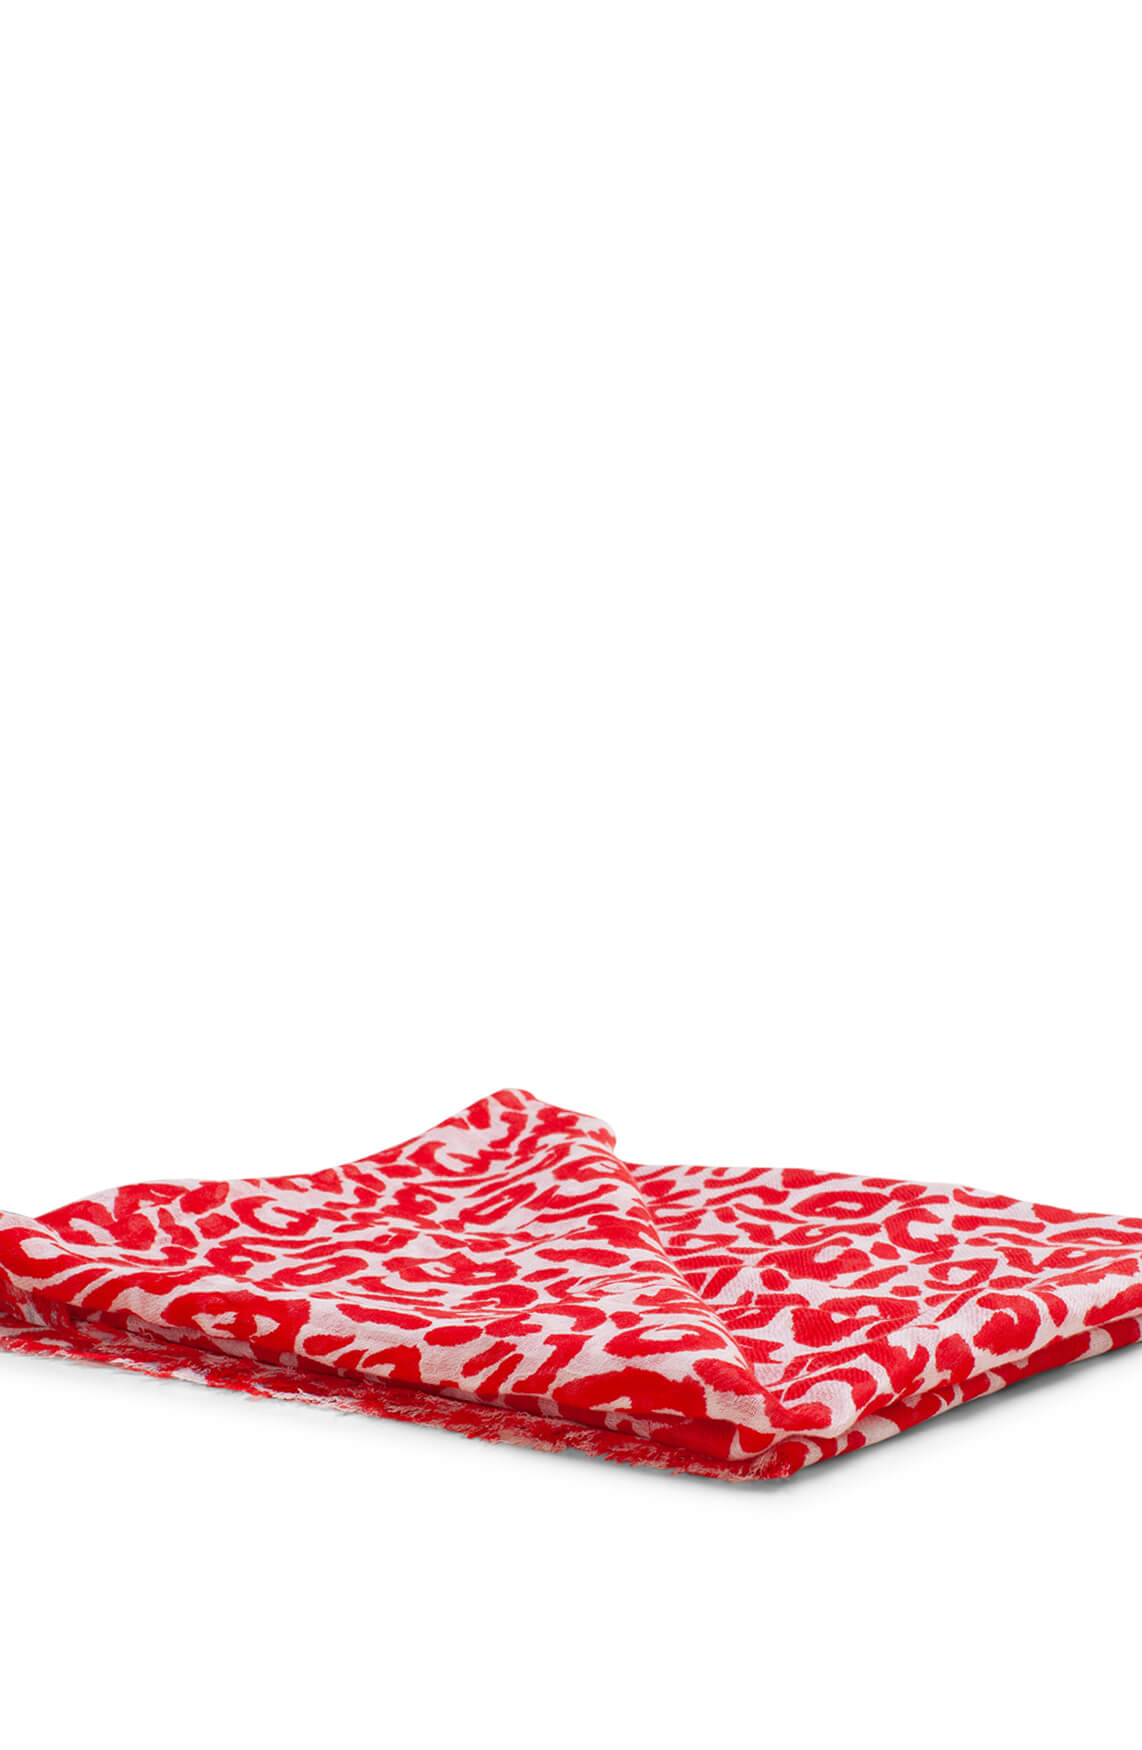 Moment by Moment Dames Shawl met panterprint Rood